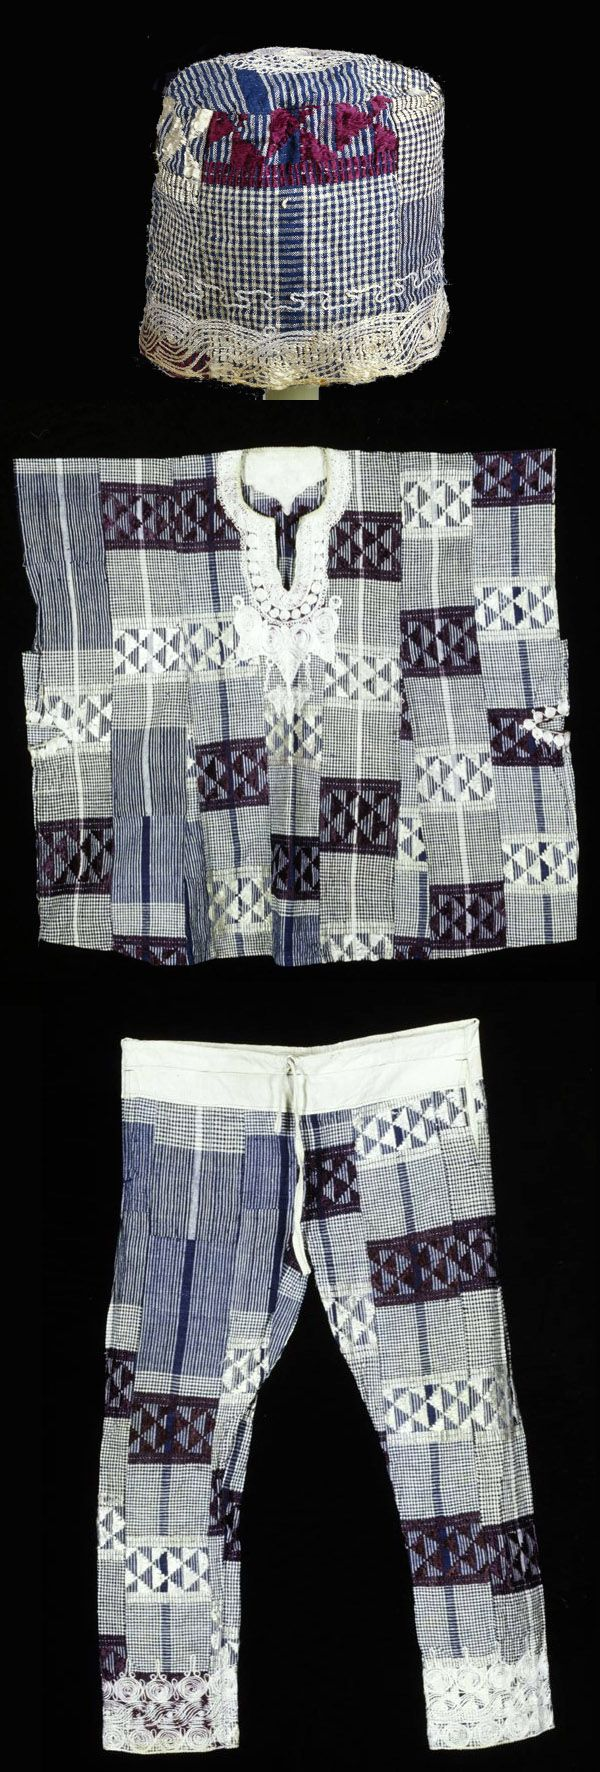 Africa | Three-piece ensemble was a festive outfit of a Yoruba man from Nigeria | blue and white cotton strip-woven cloth, which has been sewn together to create a large fabric. The white rayon or silk embroidery, which decorates the hem of the pants and hat, and the hem and neckline of the tunic, is characteristic of Nigerian clothing. The checkered pattern of the fabric, however, is exceptional, and striking to onlookers. | The hat has been magnified to show the detail.